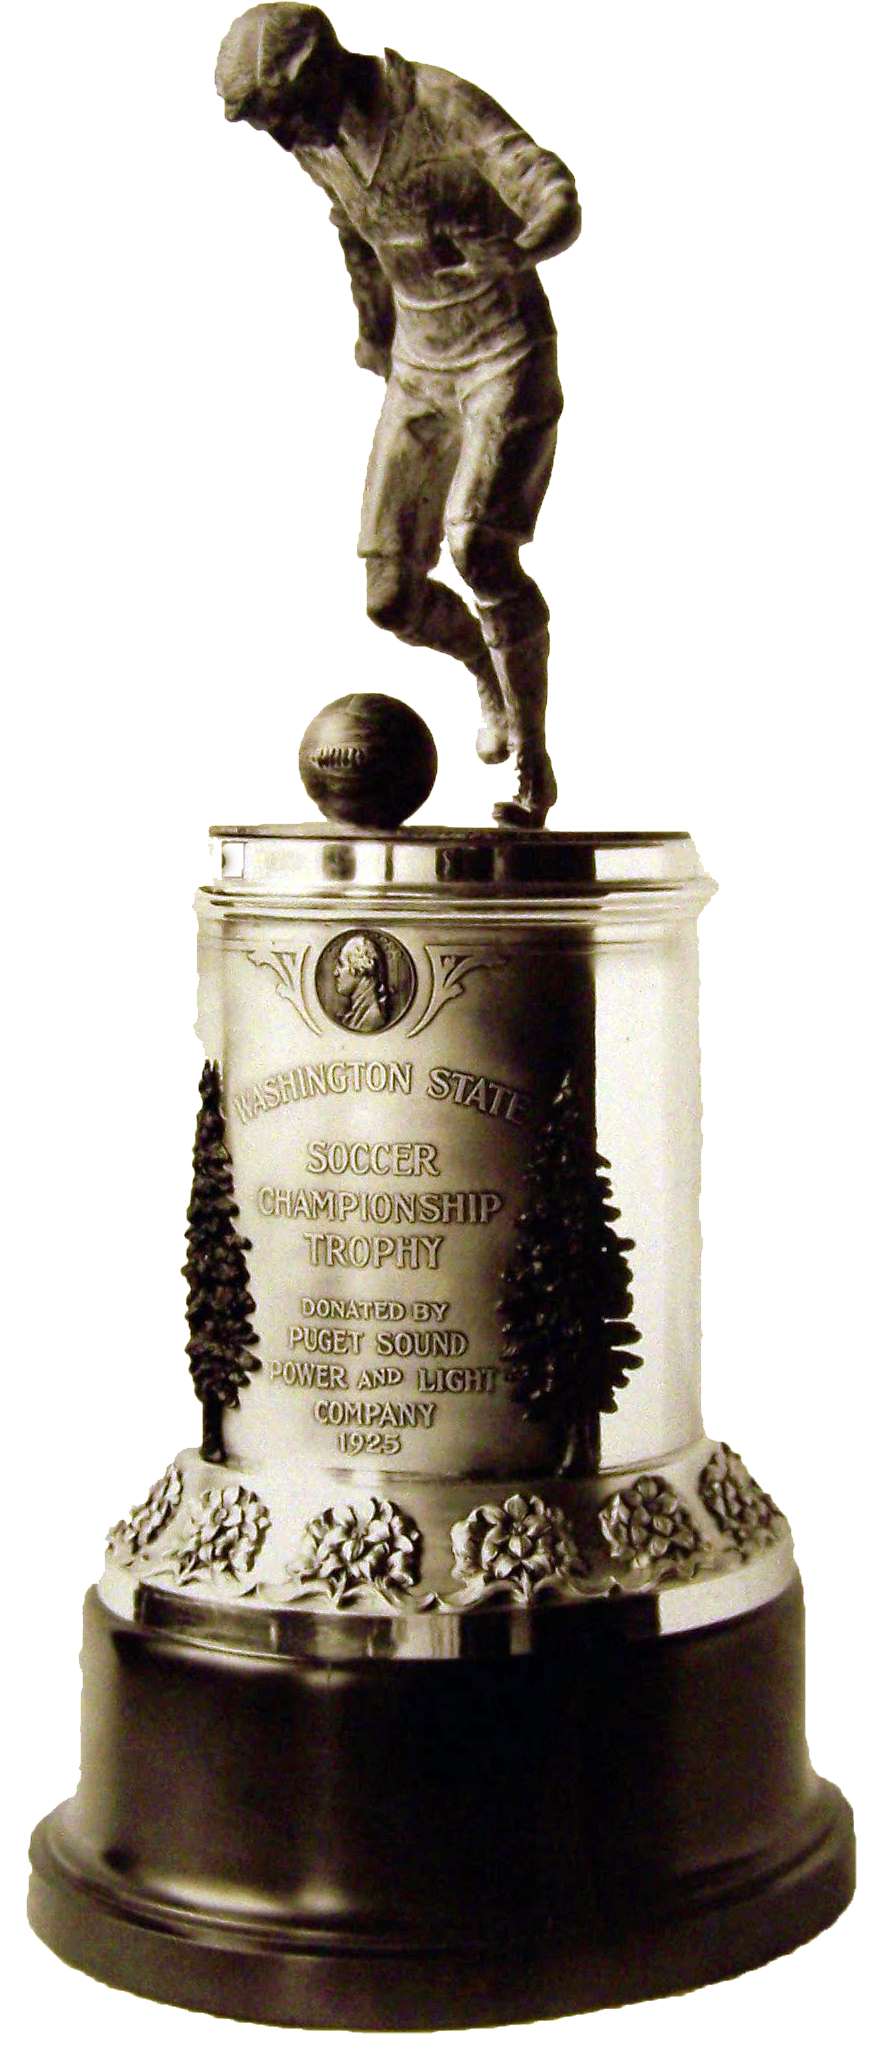 <br /> <b>Notice</b>:  Undefined index: trophy in <b>/home/i2y8qh3jnz7k/public_html/wp-content/themes/WashingtonLegends_2018/page-about.php</b> on line <b>48</b><br />